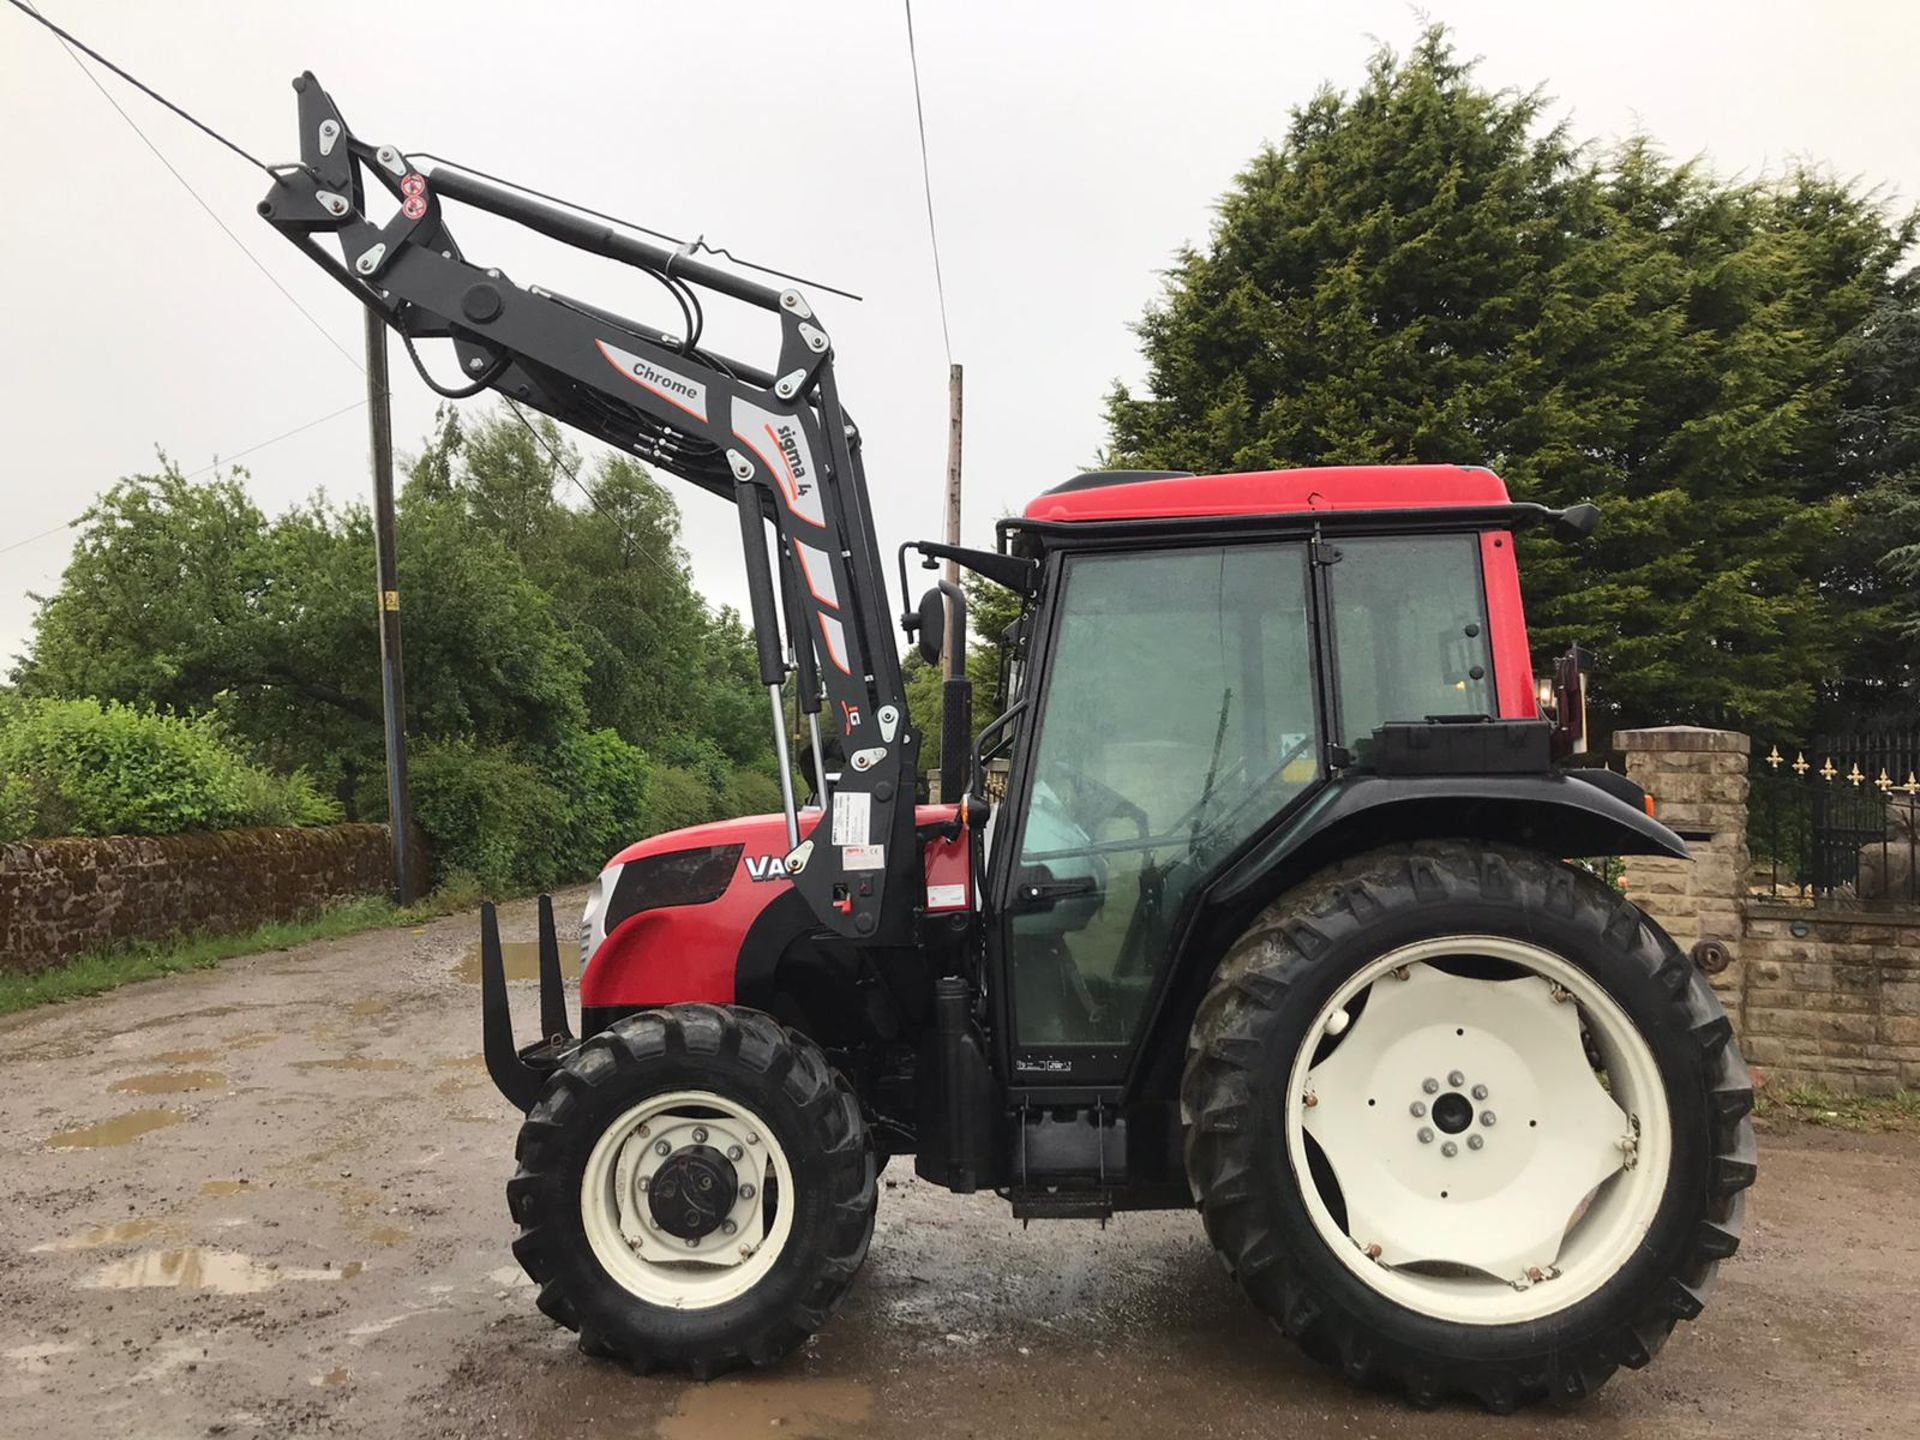 Lot 29 - 2017/67 REG VALTRA A73 TRACTOR WITH LOADER, RUNS, DRIVES AND LIFTS, SHOWING 550 HOURS *PLUS VAT*